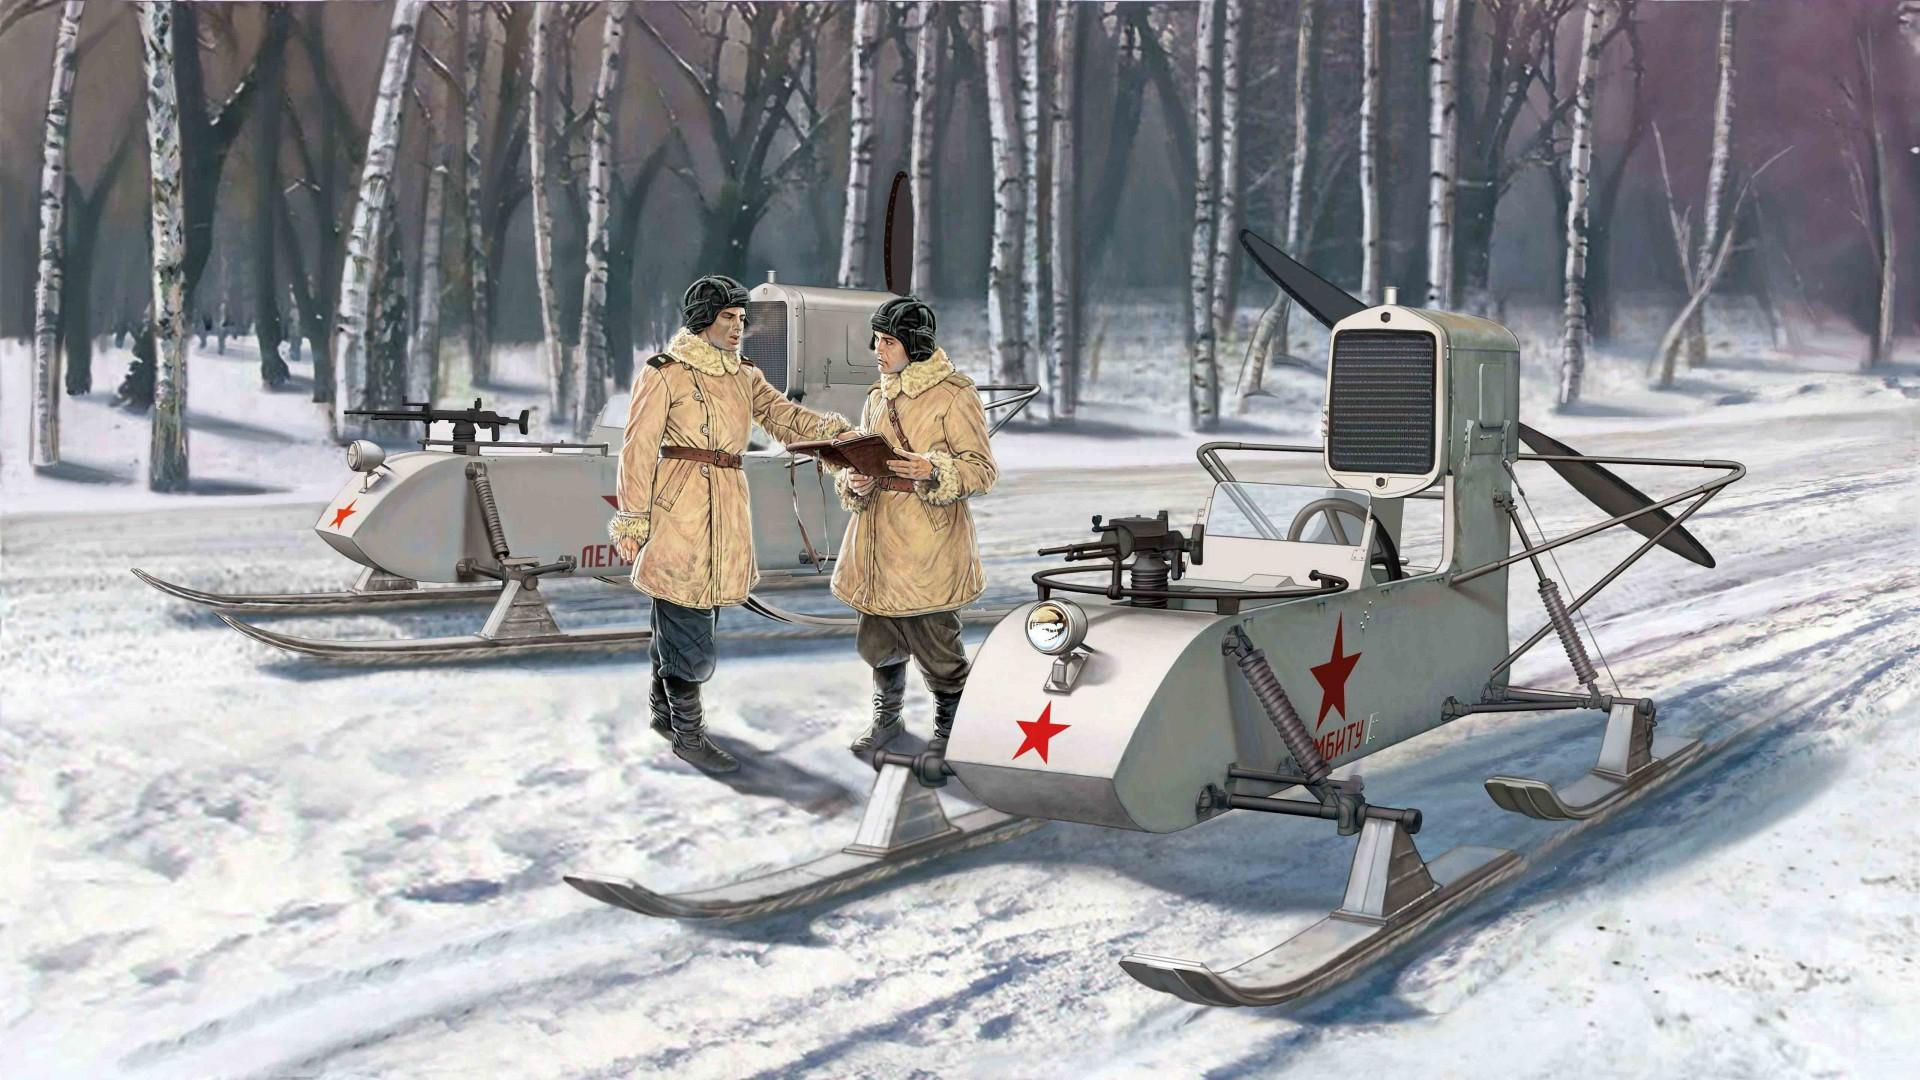 TGIF: Military snowmobile patrol